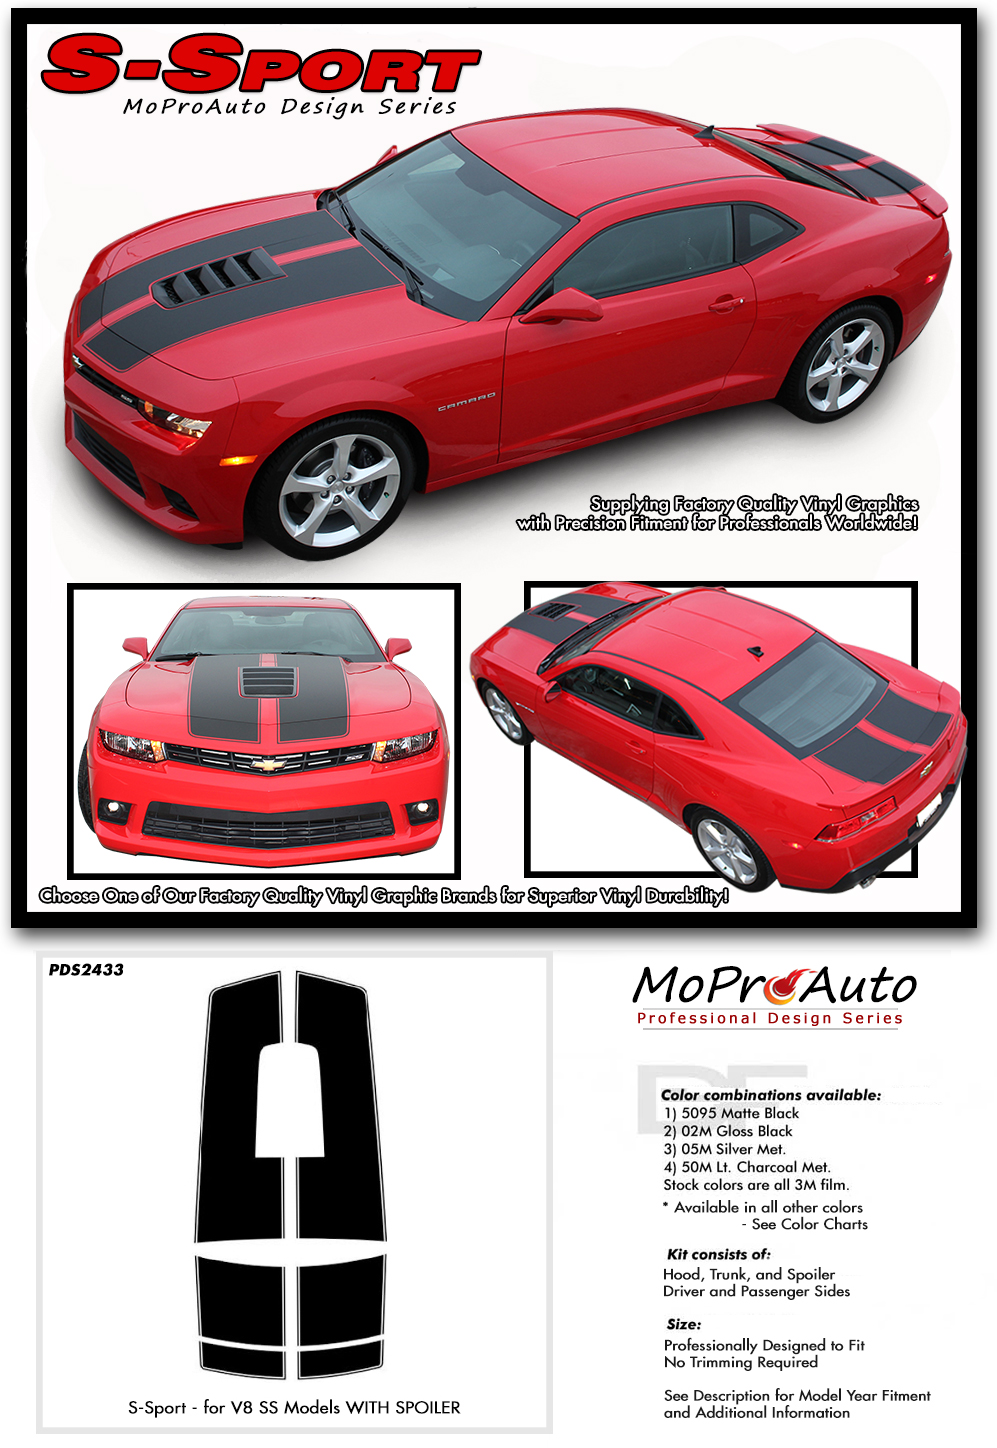 2014-2015 Chevy SS Camaro Vinyl Graphics Kits, Decals, Stripes by MoProAuto